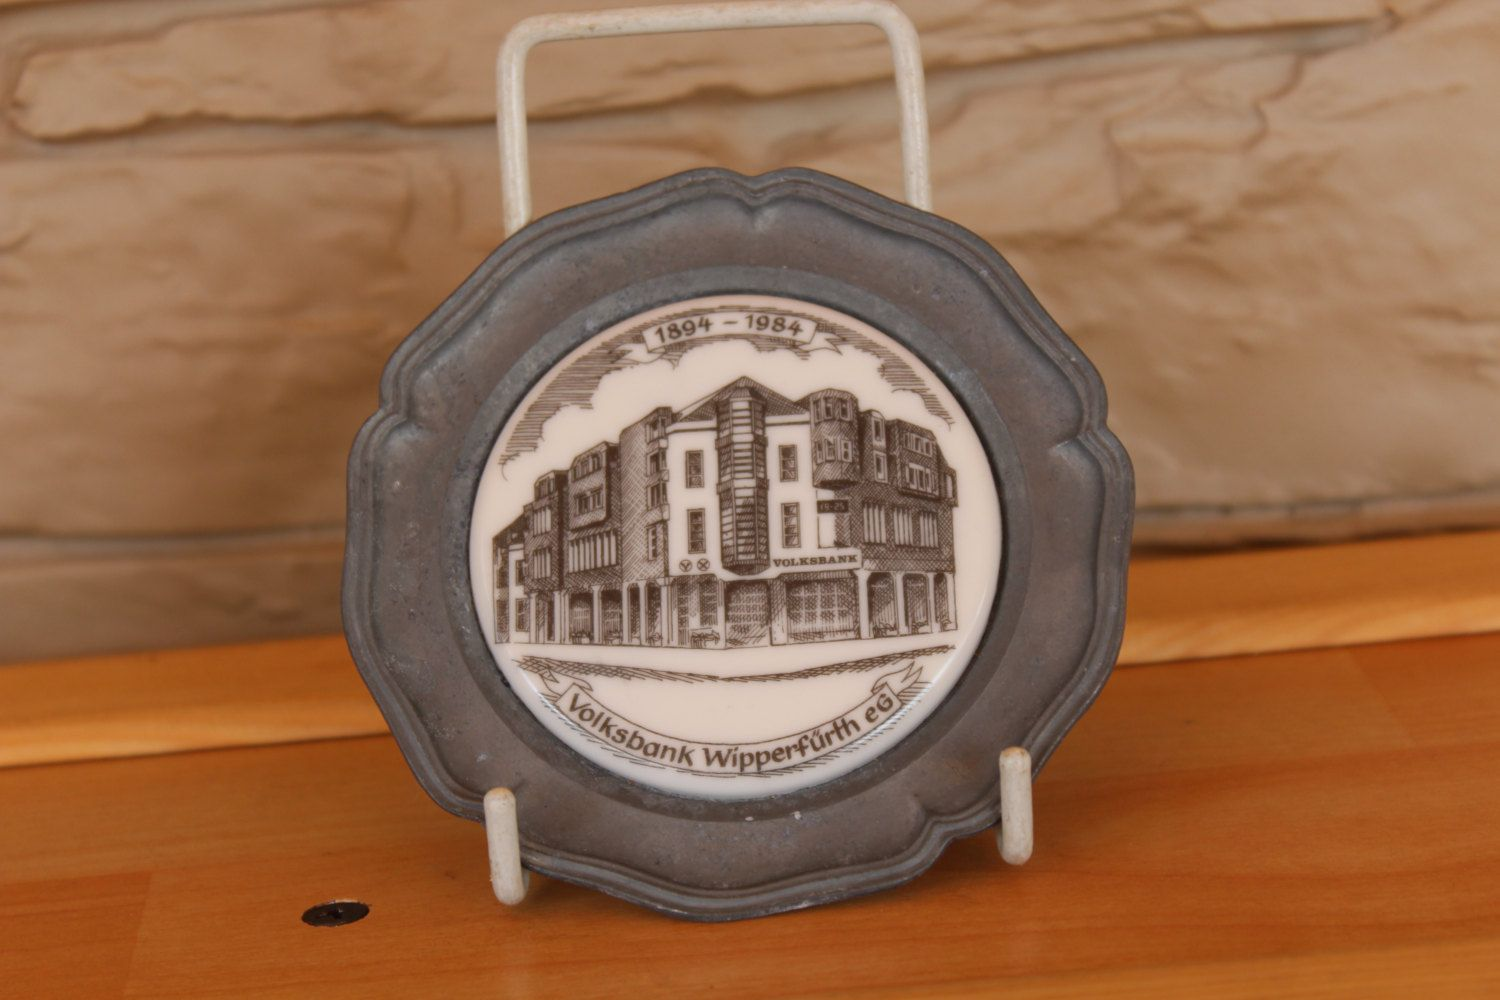 German pewter plate plate with ceramic building volksbank german pewter plate plate with ceramic building volksbank collectible plate wall hanging amipublicfo Choice Image